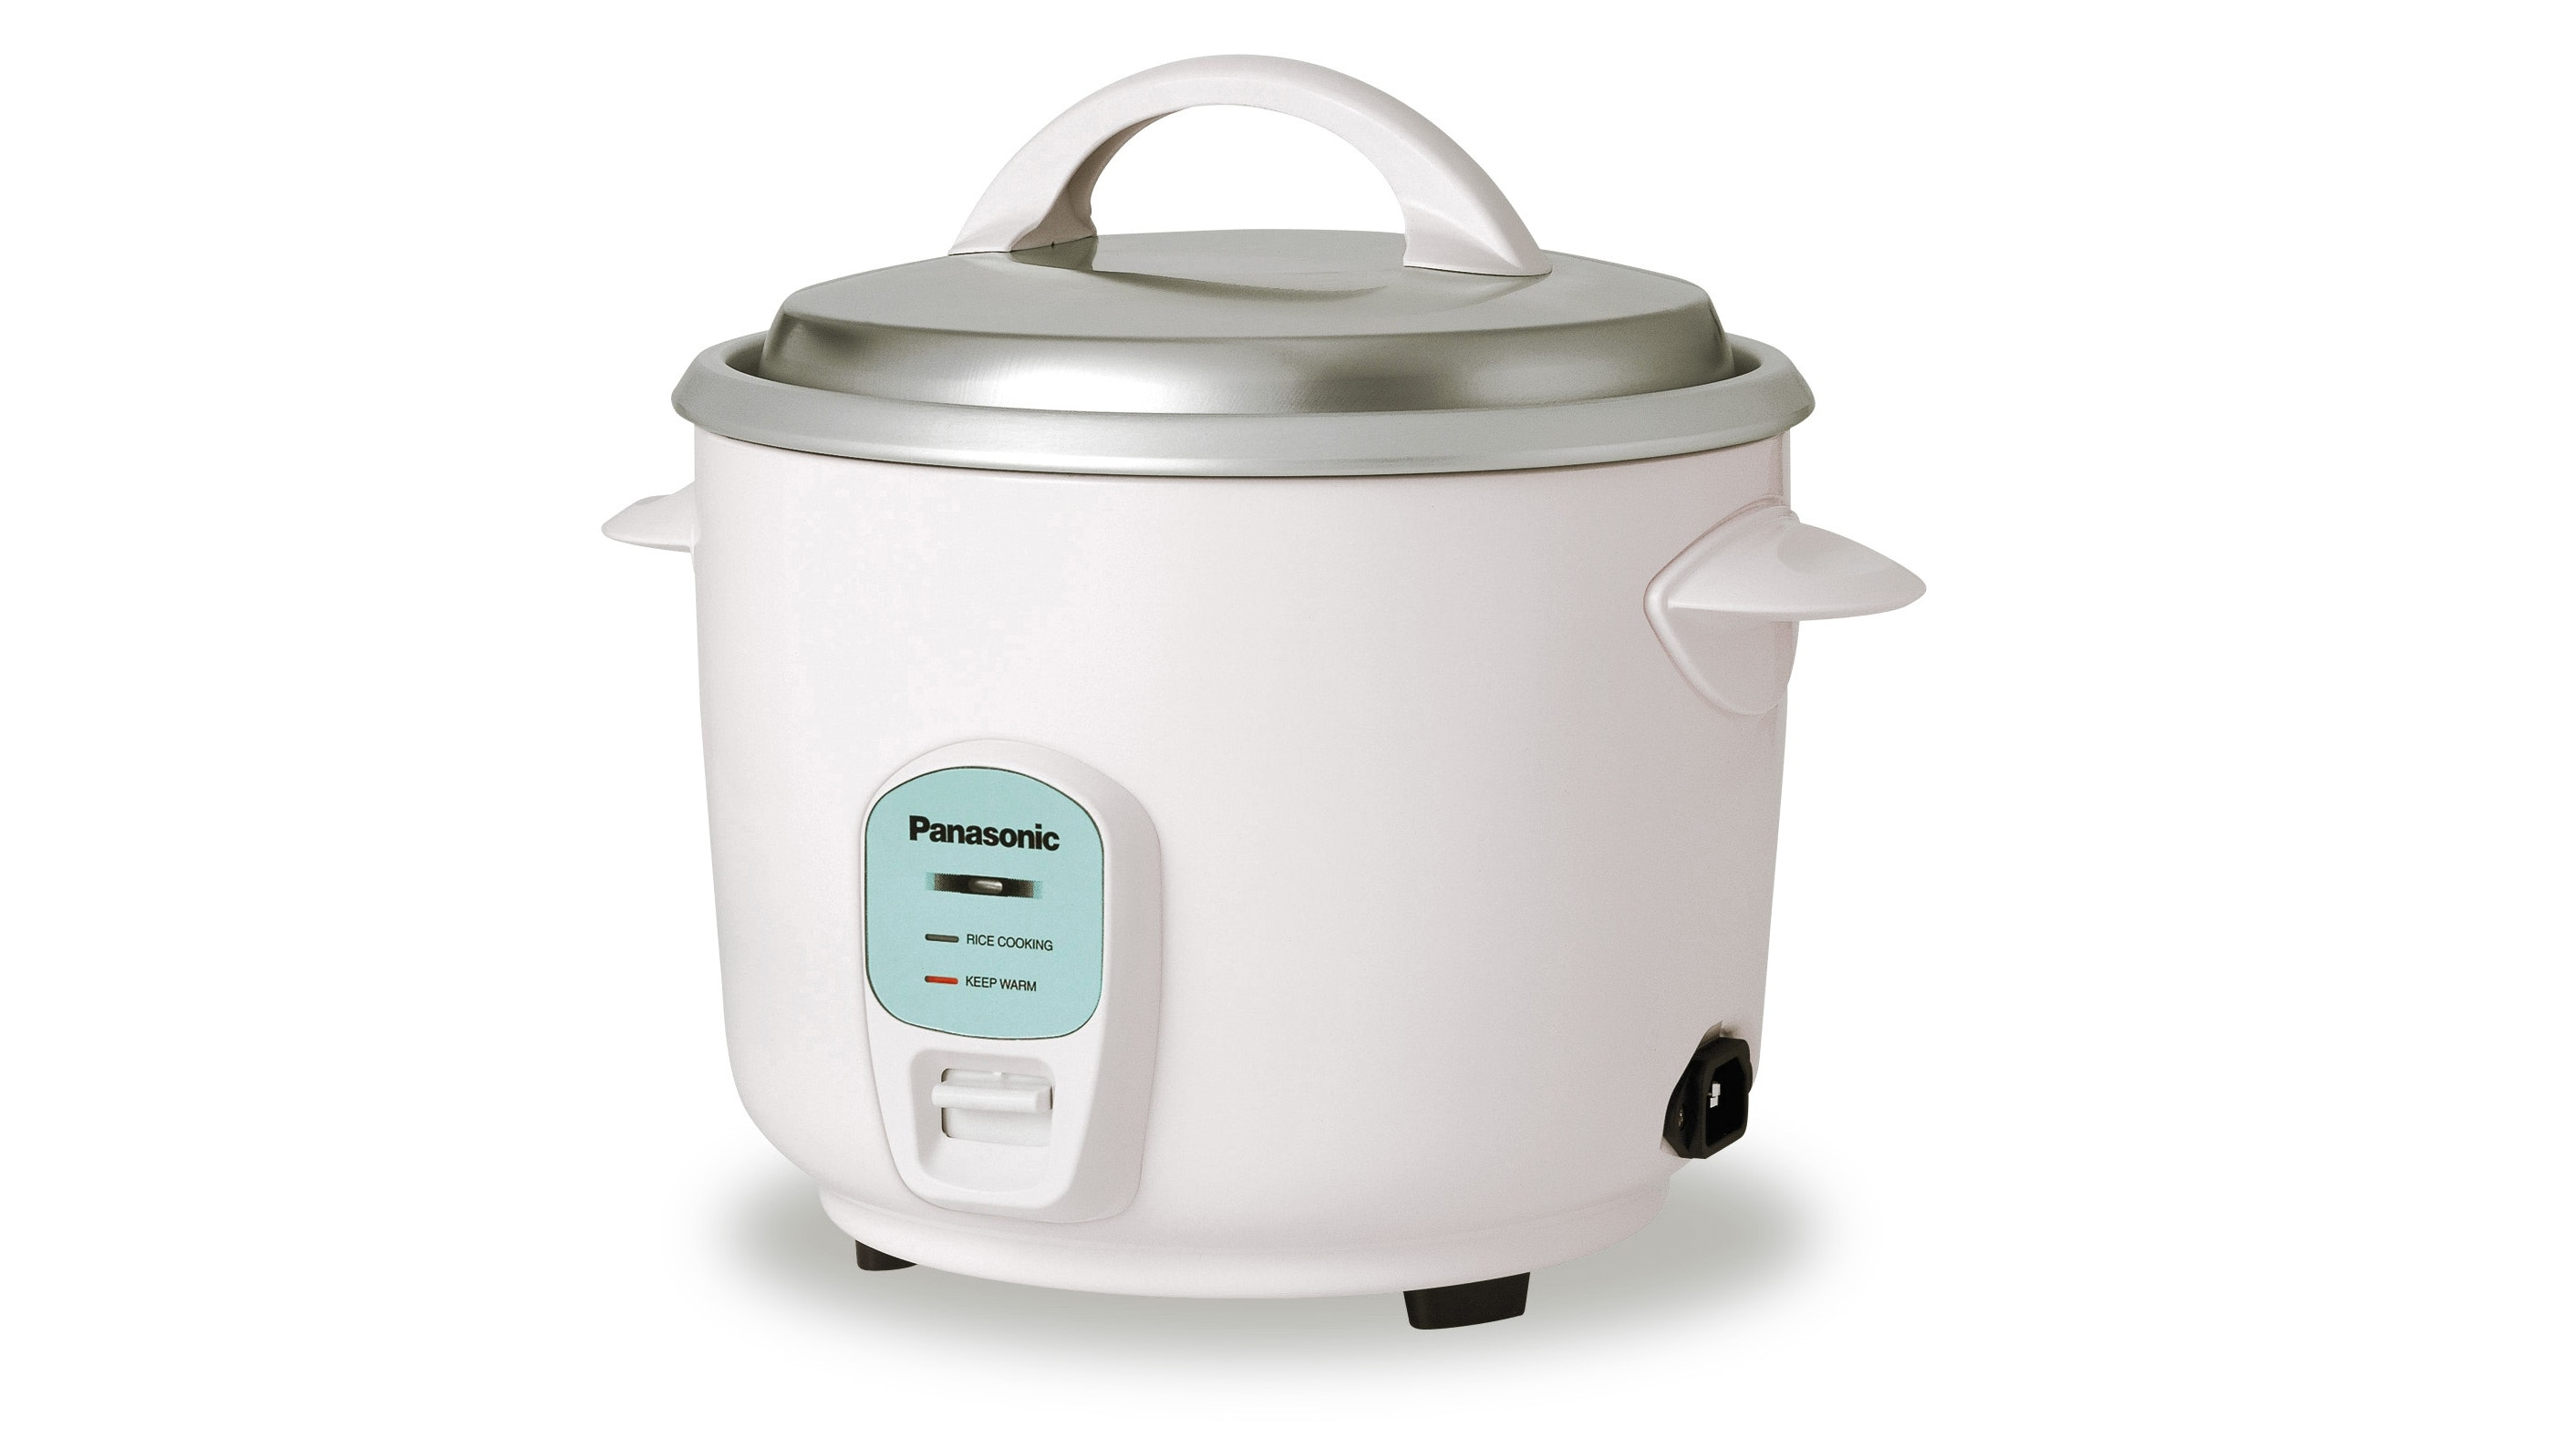 Panasonic 1 8l Rice Cooker Harvey Norman Malaysia